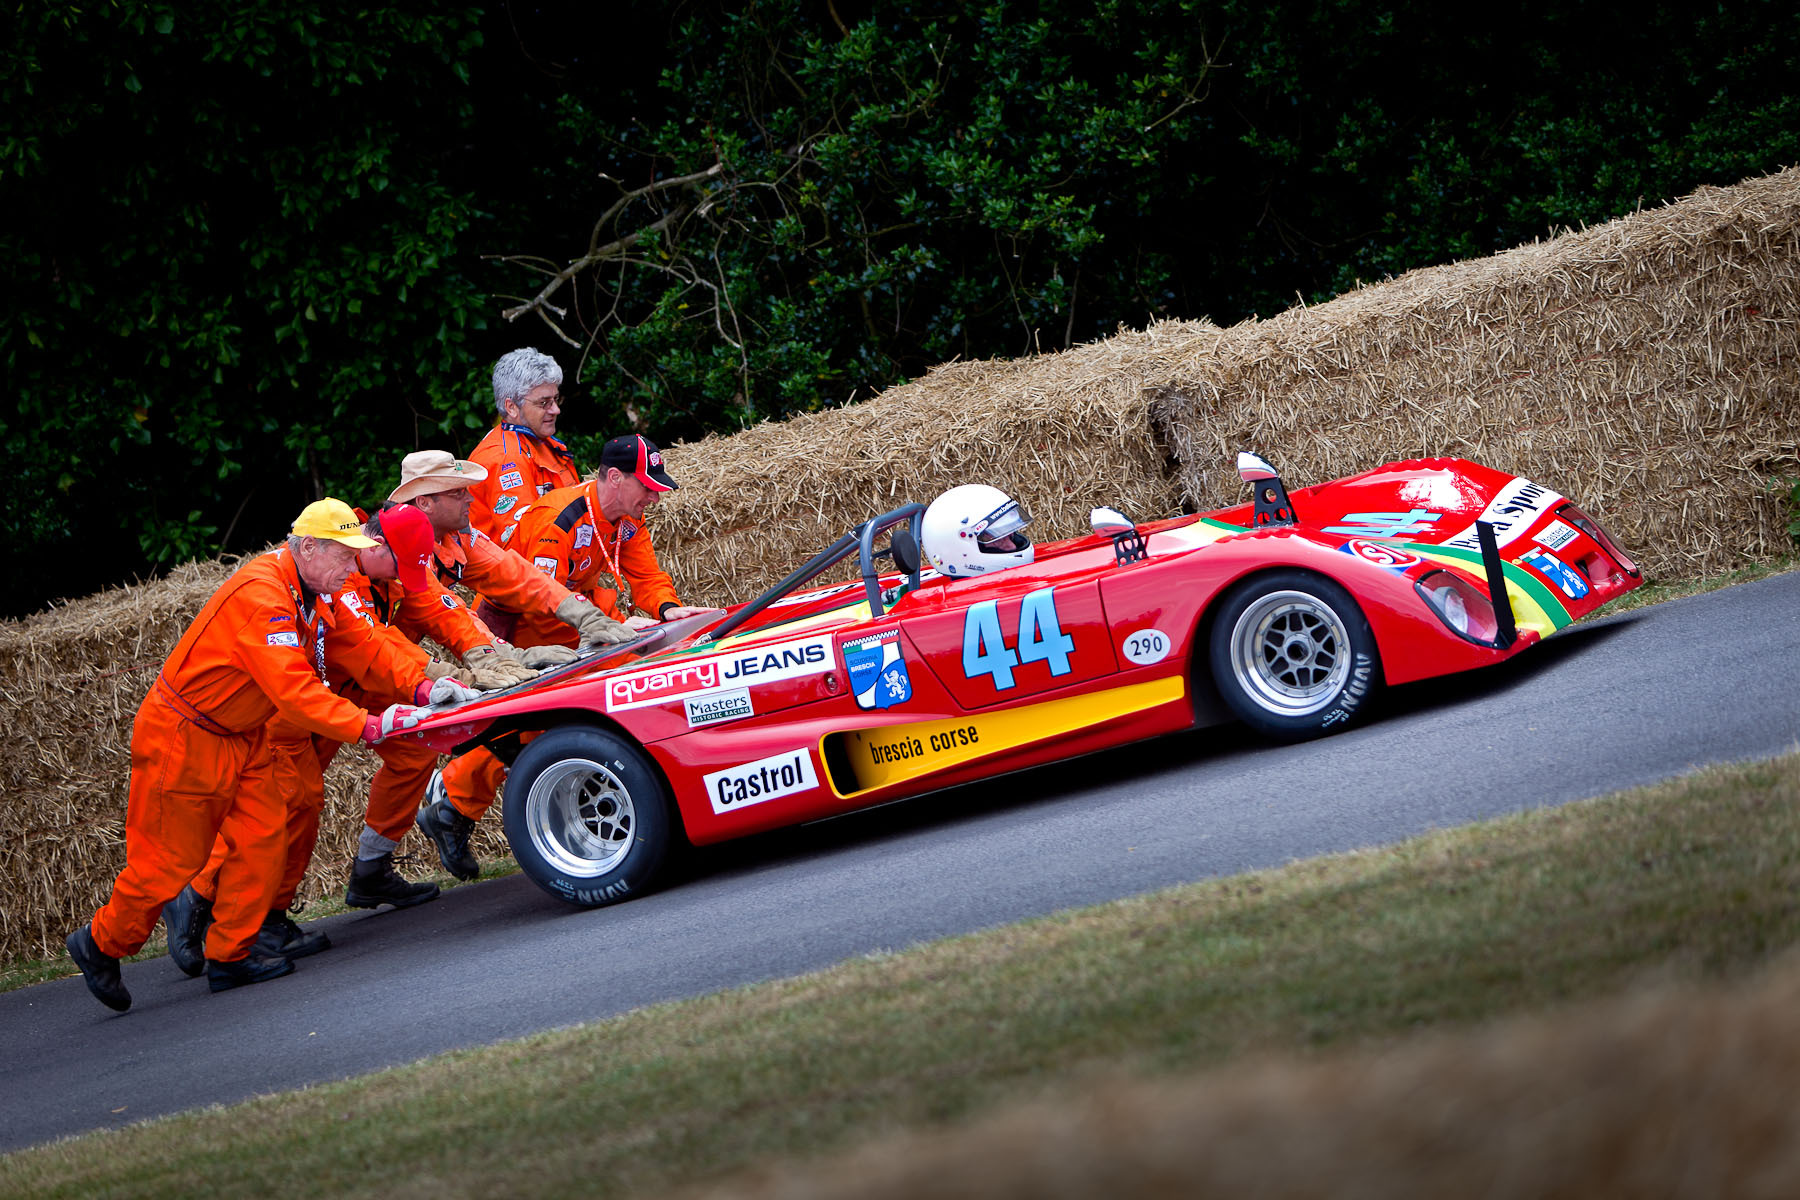 42_0_475_1goodwood_7433.jpg